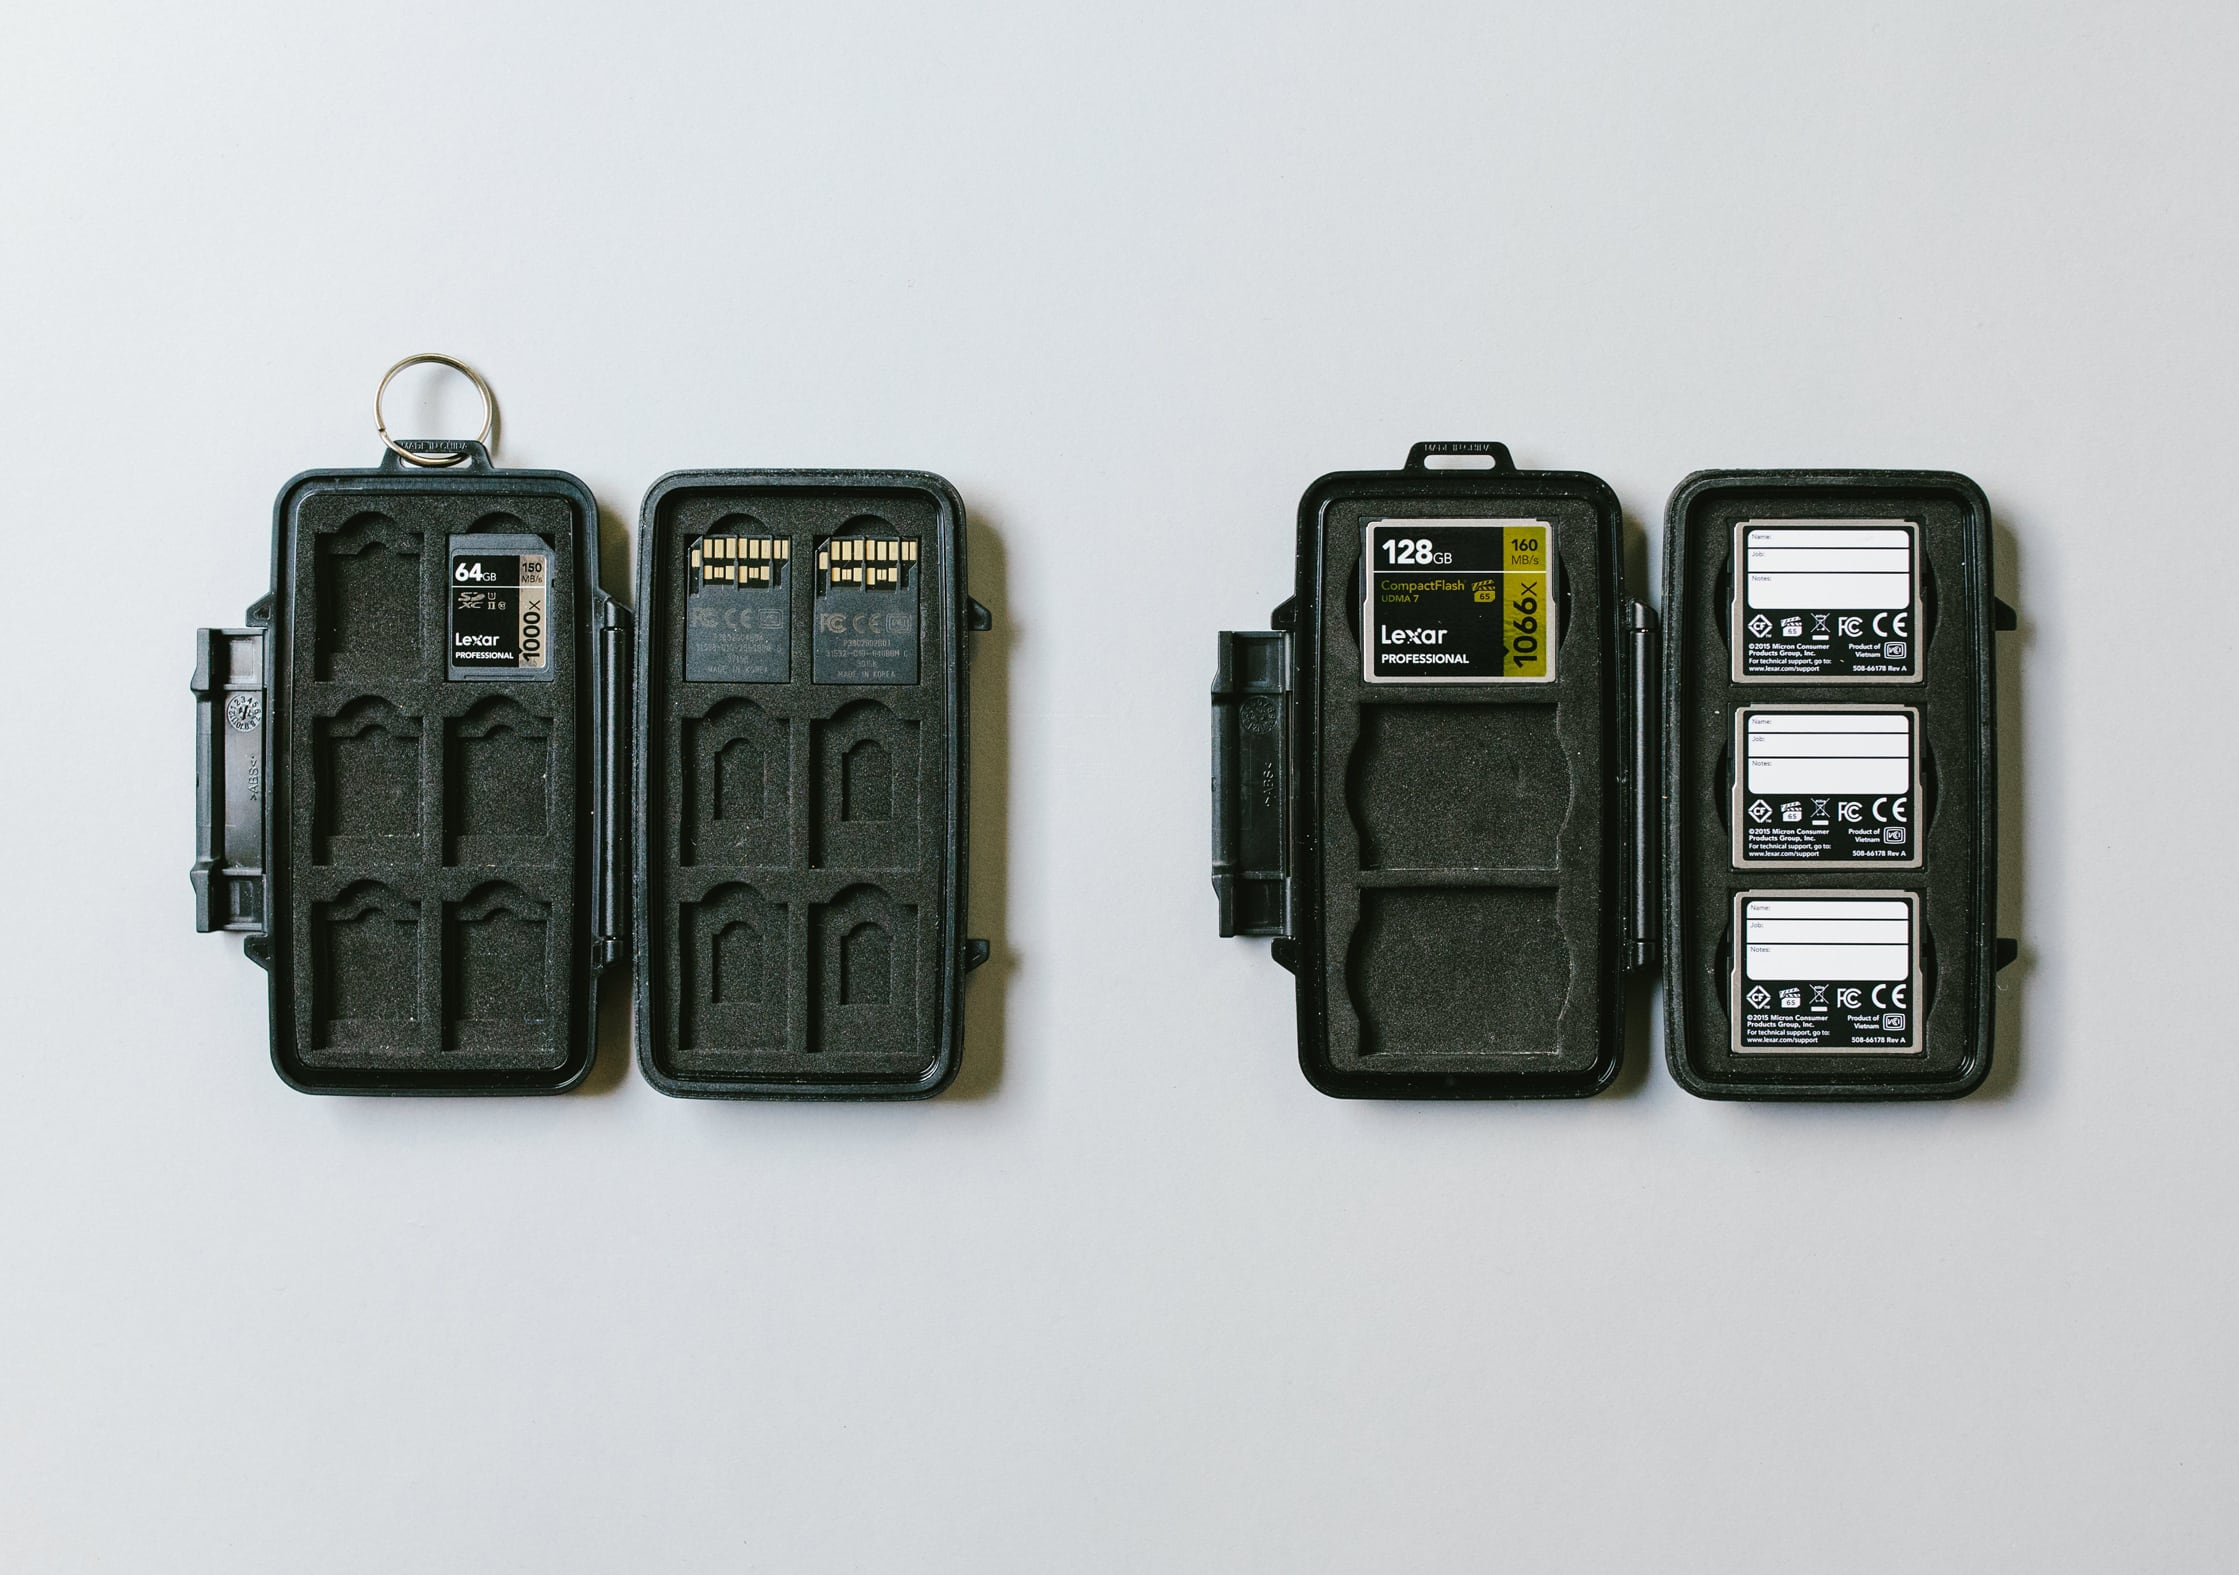 Pelican 0915 (left) and 0945 (right) Memory Card Case Interior Comparison